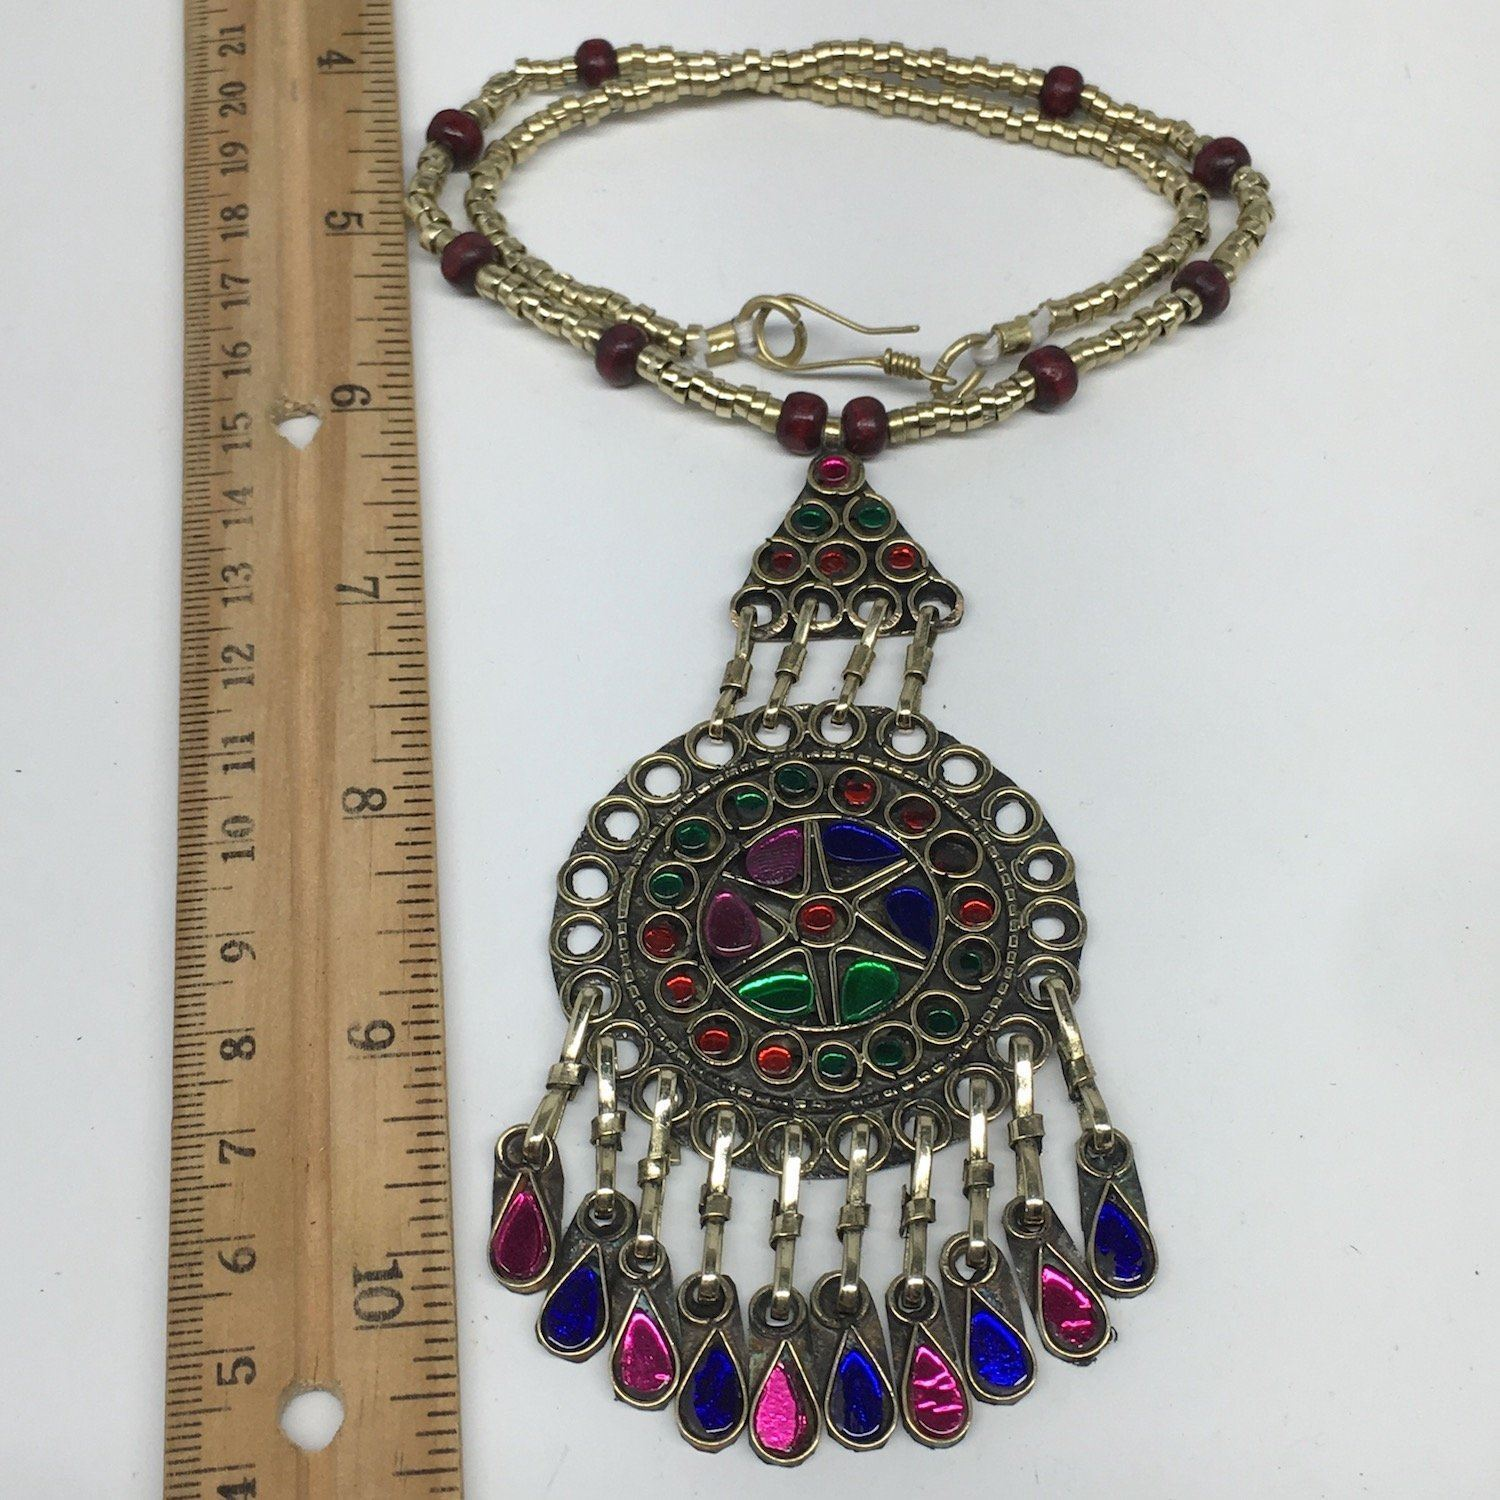 Kuchi Necklace Afghan Tribal Fashion Colorful Glass ATS Necktie Necklace, KN419